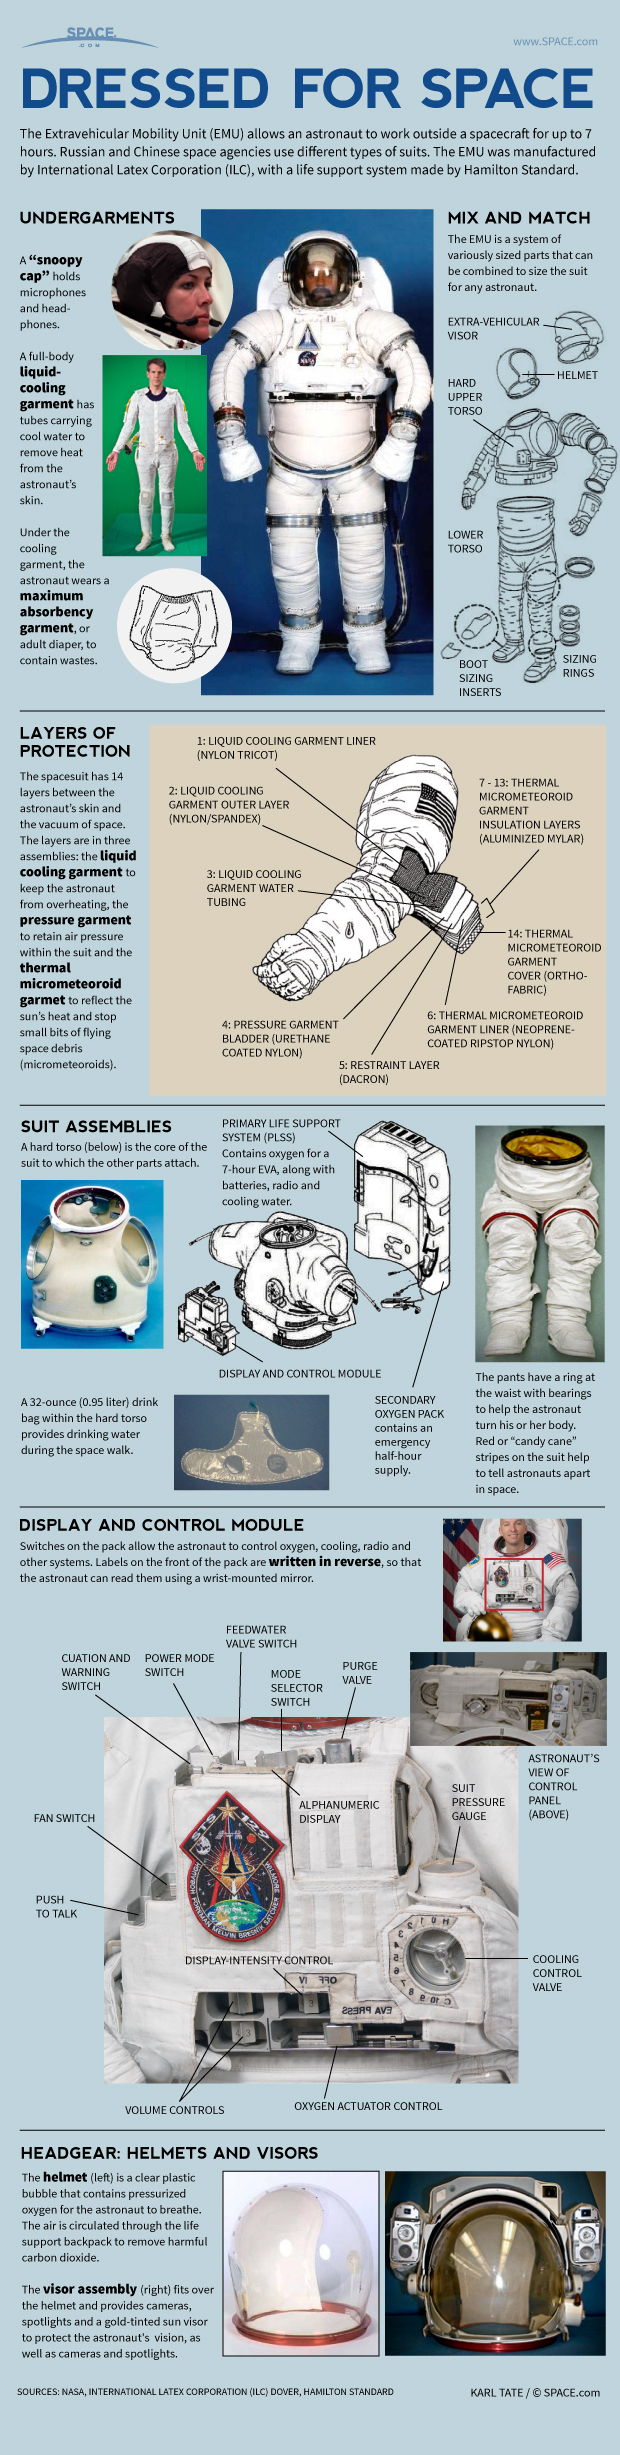 Infographic: How space suits keep astronauts alive.